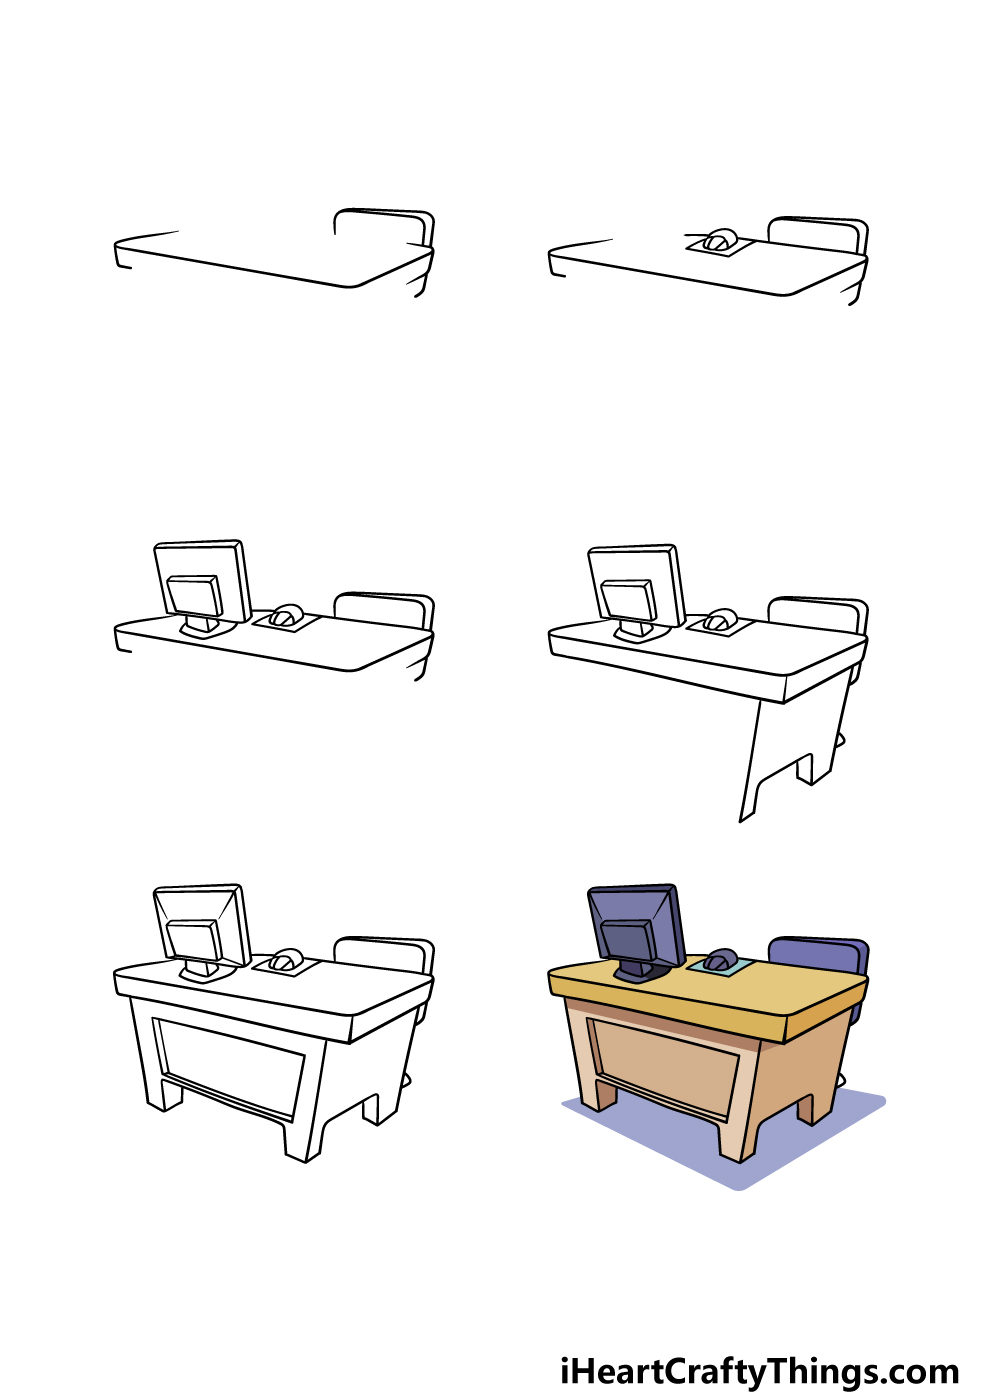 how to draw a desk in 6 steps